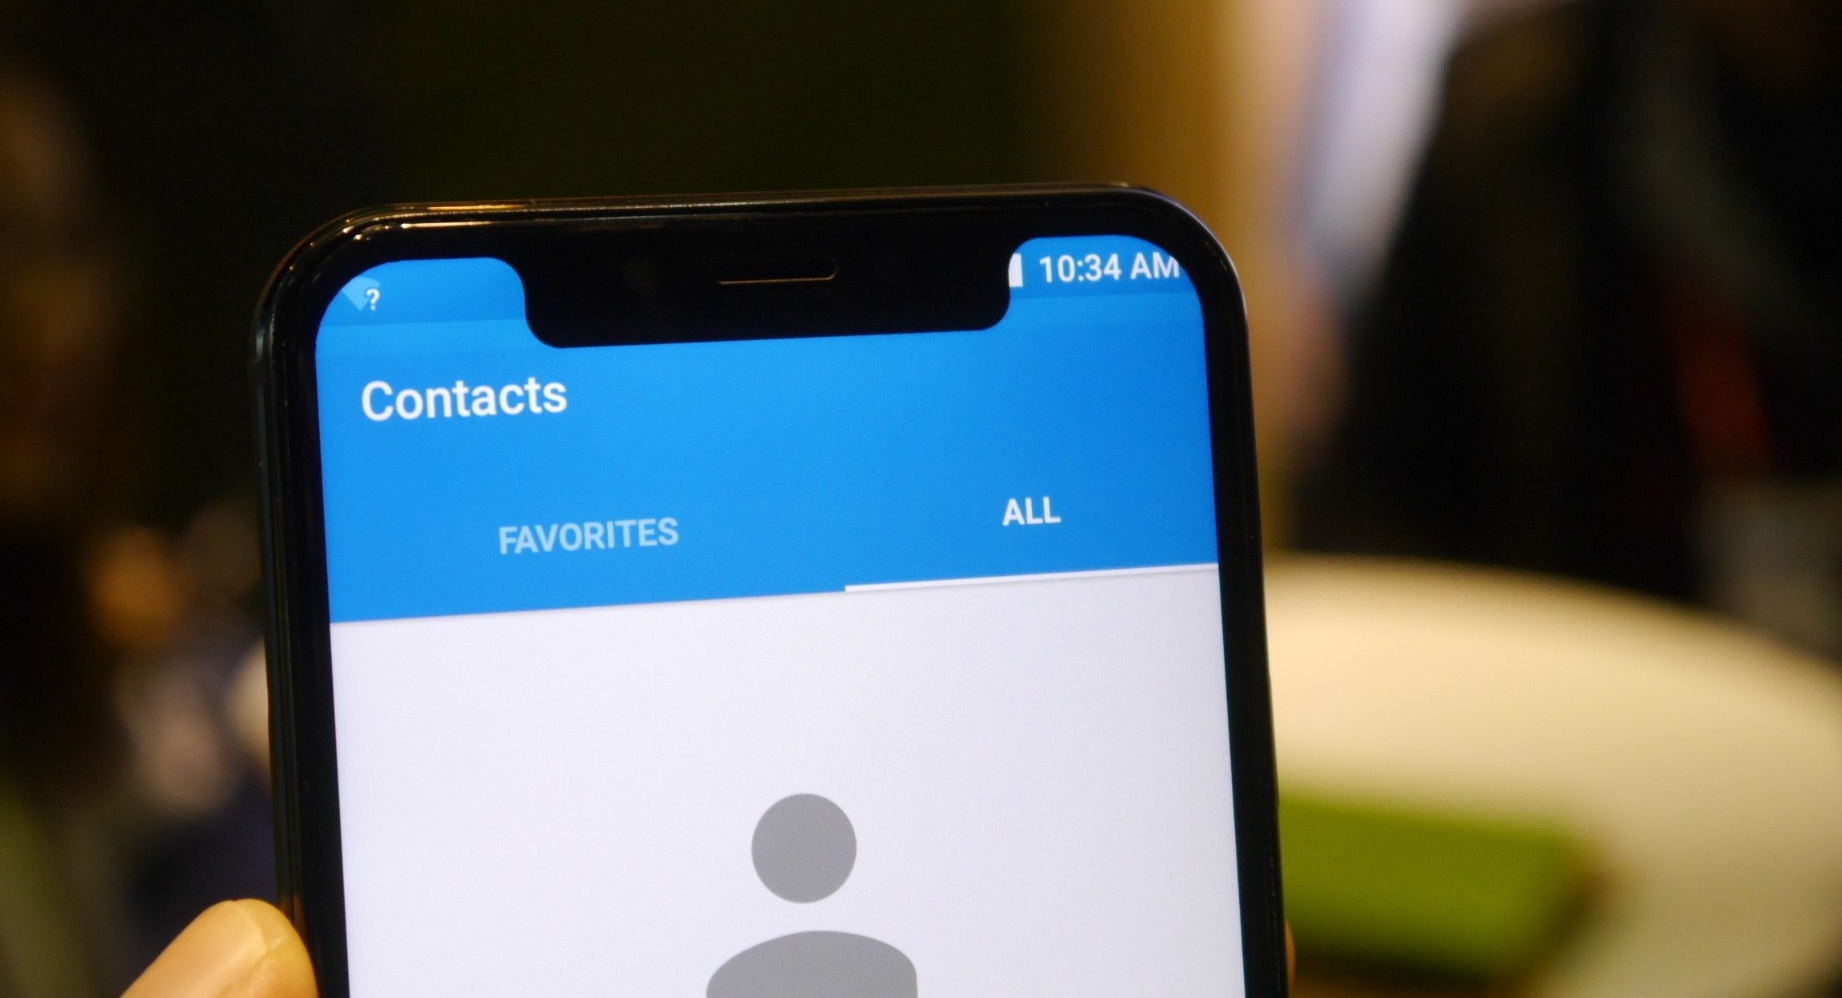 Mobiles with notch